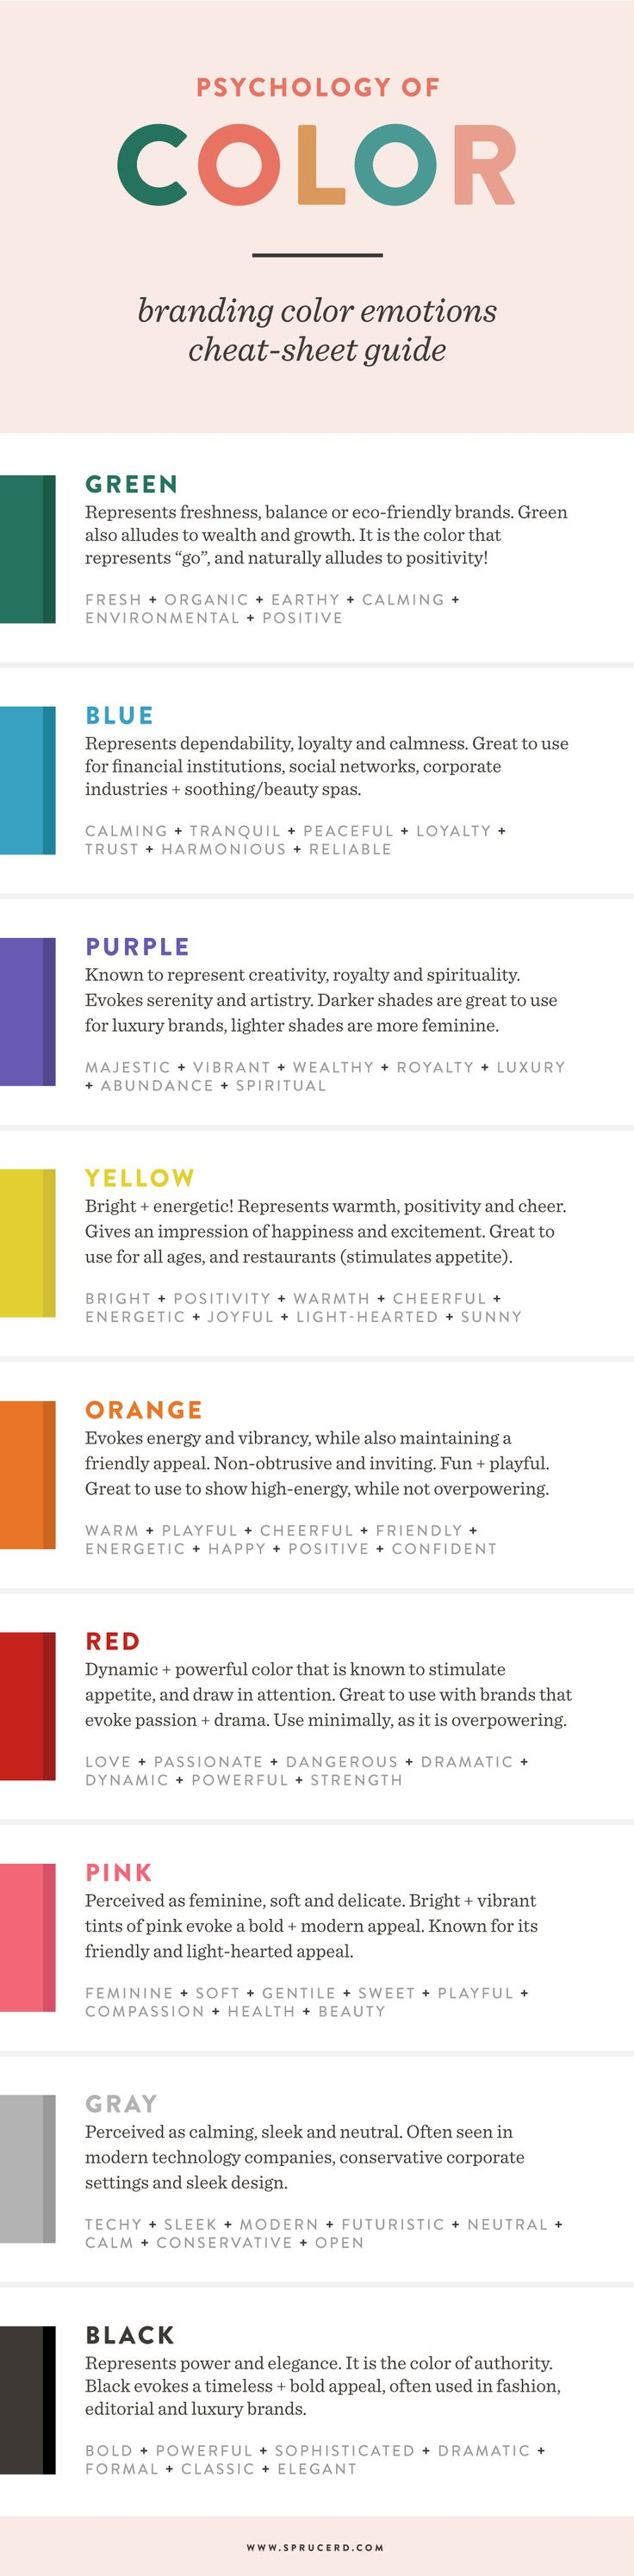 Psychology of Color in Branding | Spruce Rd. #branding #color #psychology: